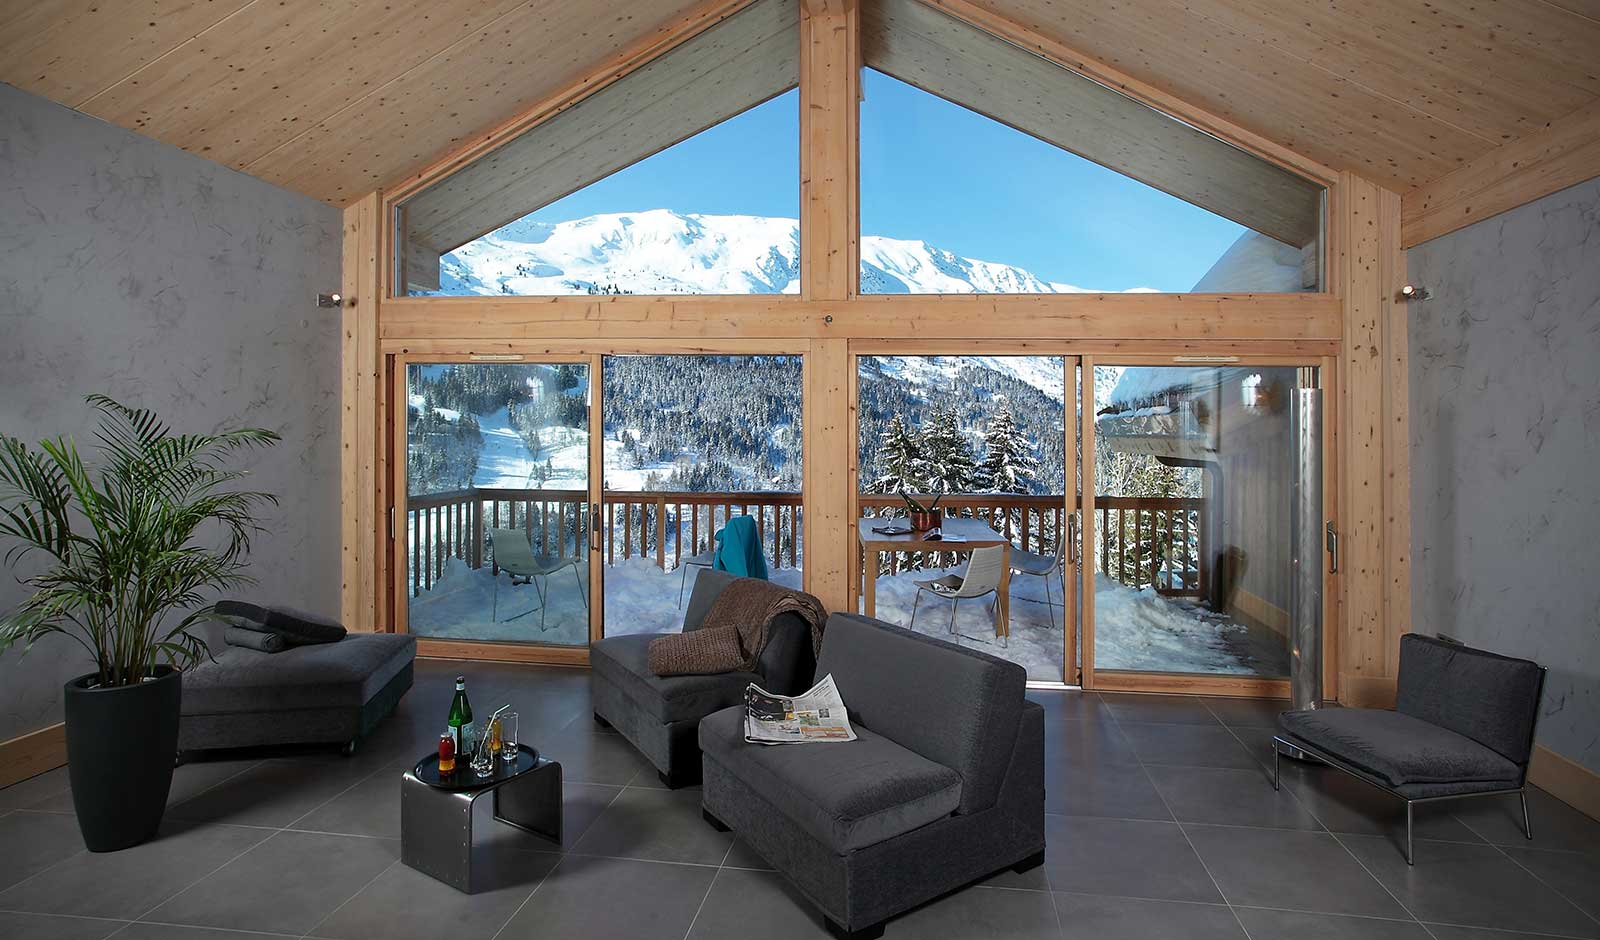 hotel-adray-telebar-8-atelier-crea-and-co-architecte-design-project-manager-meribel-savoie